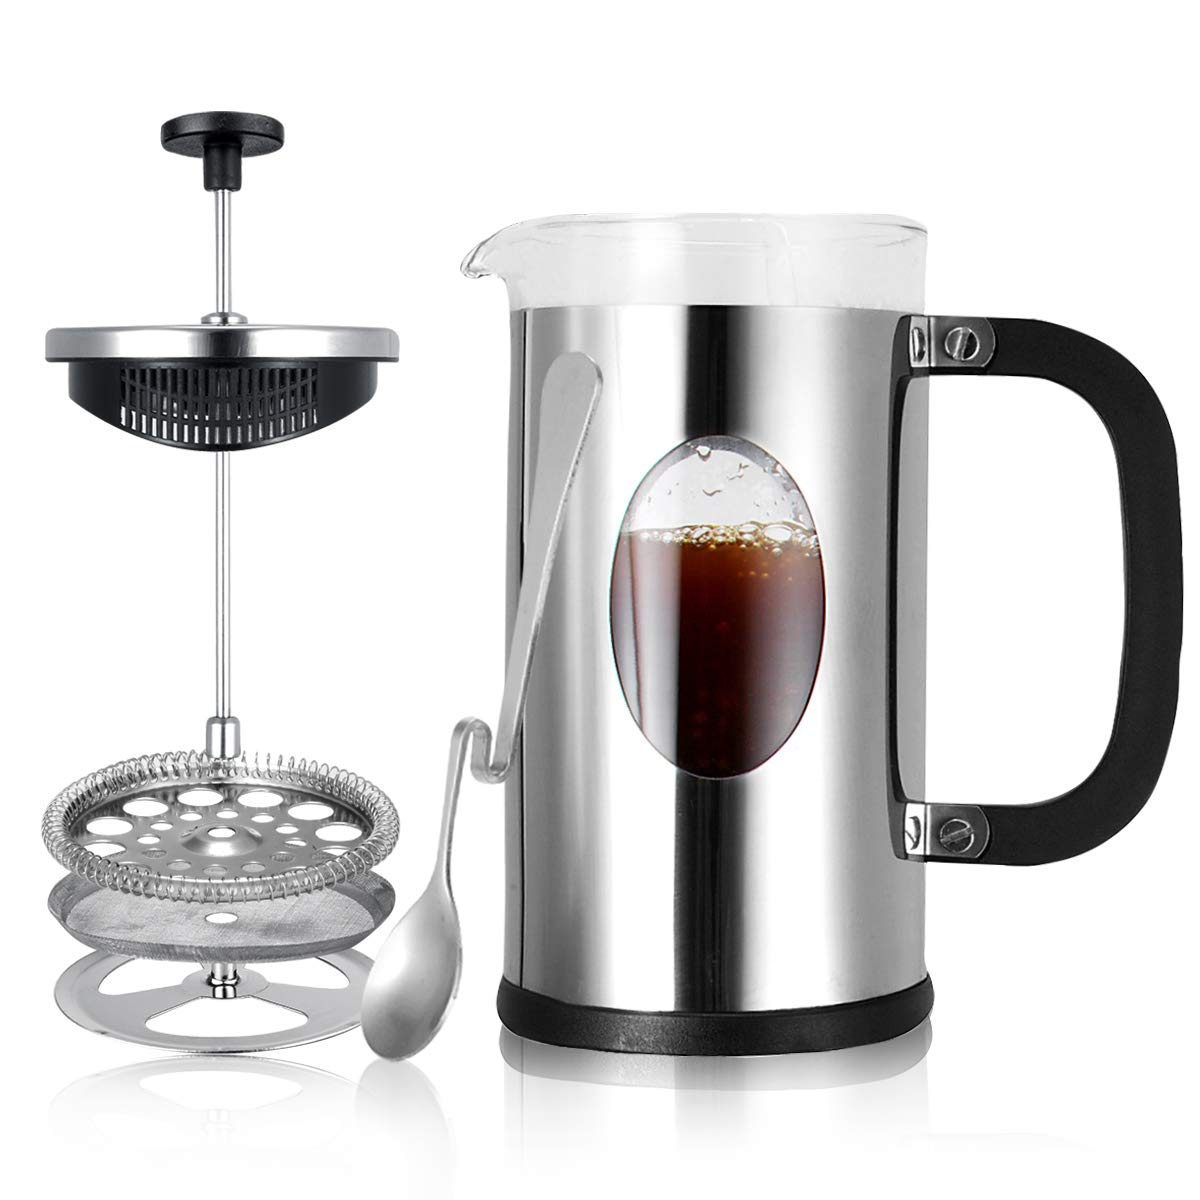 French Coffee Press Coffee Maker – Heat Resistant Borosilicate Glass and 4 Level Filtration 304 Grade Stainless Steel 8 cup,34 oz – Perfect To Make Fresh French Coffee, Tea, Espresso